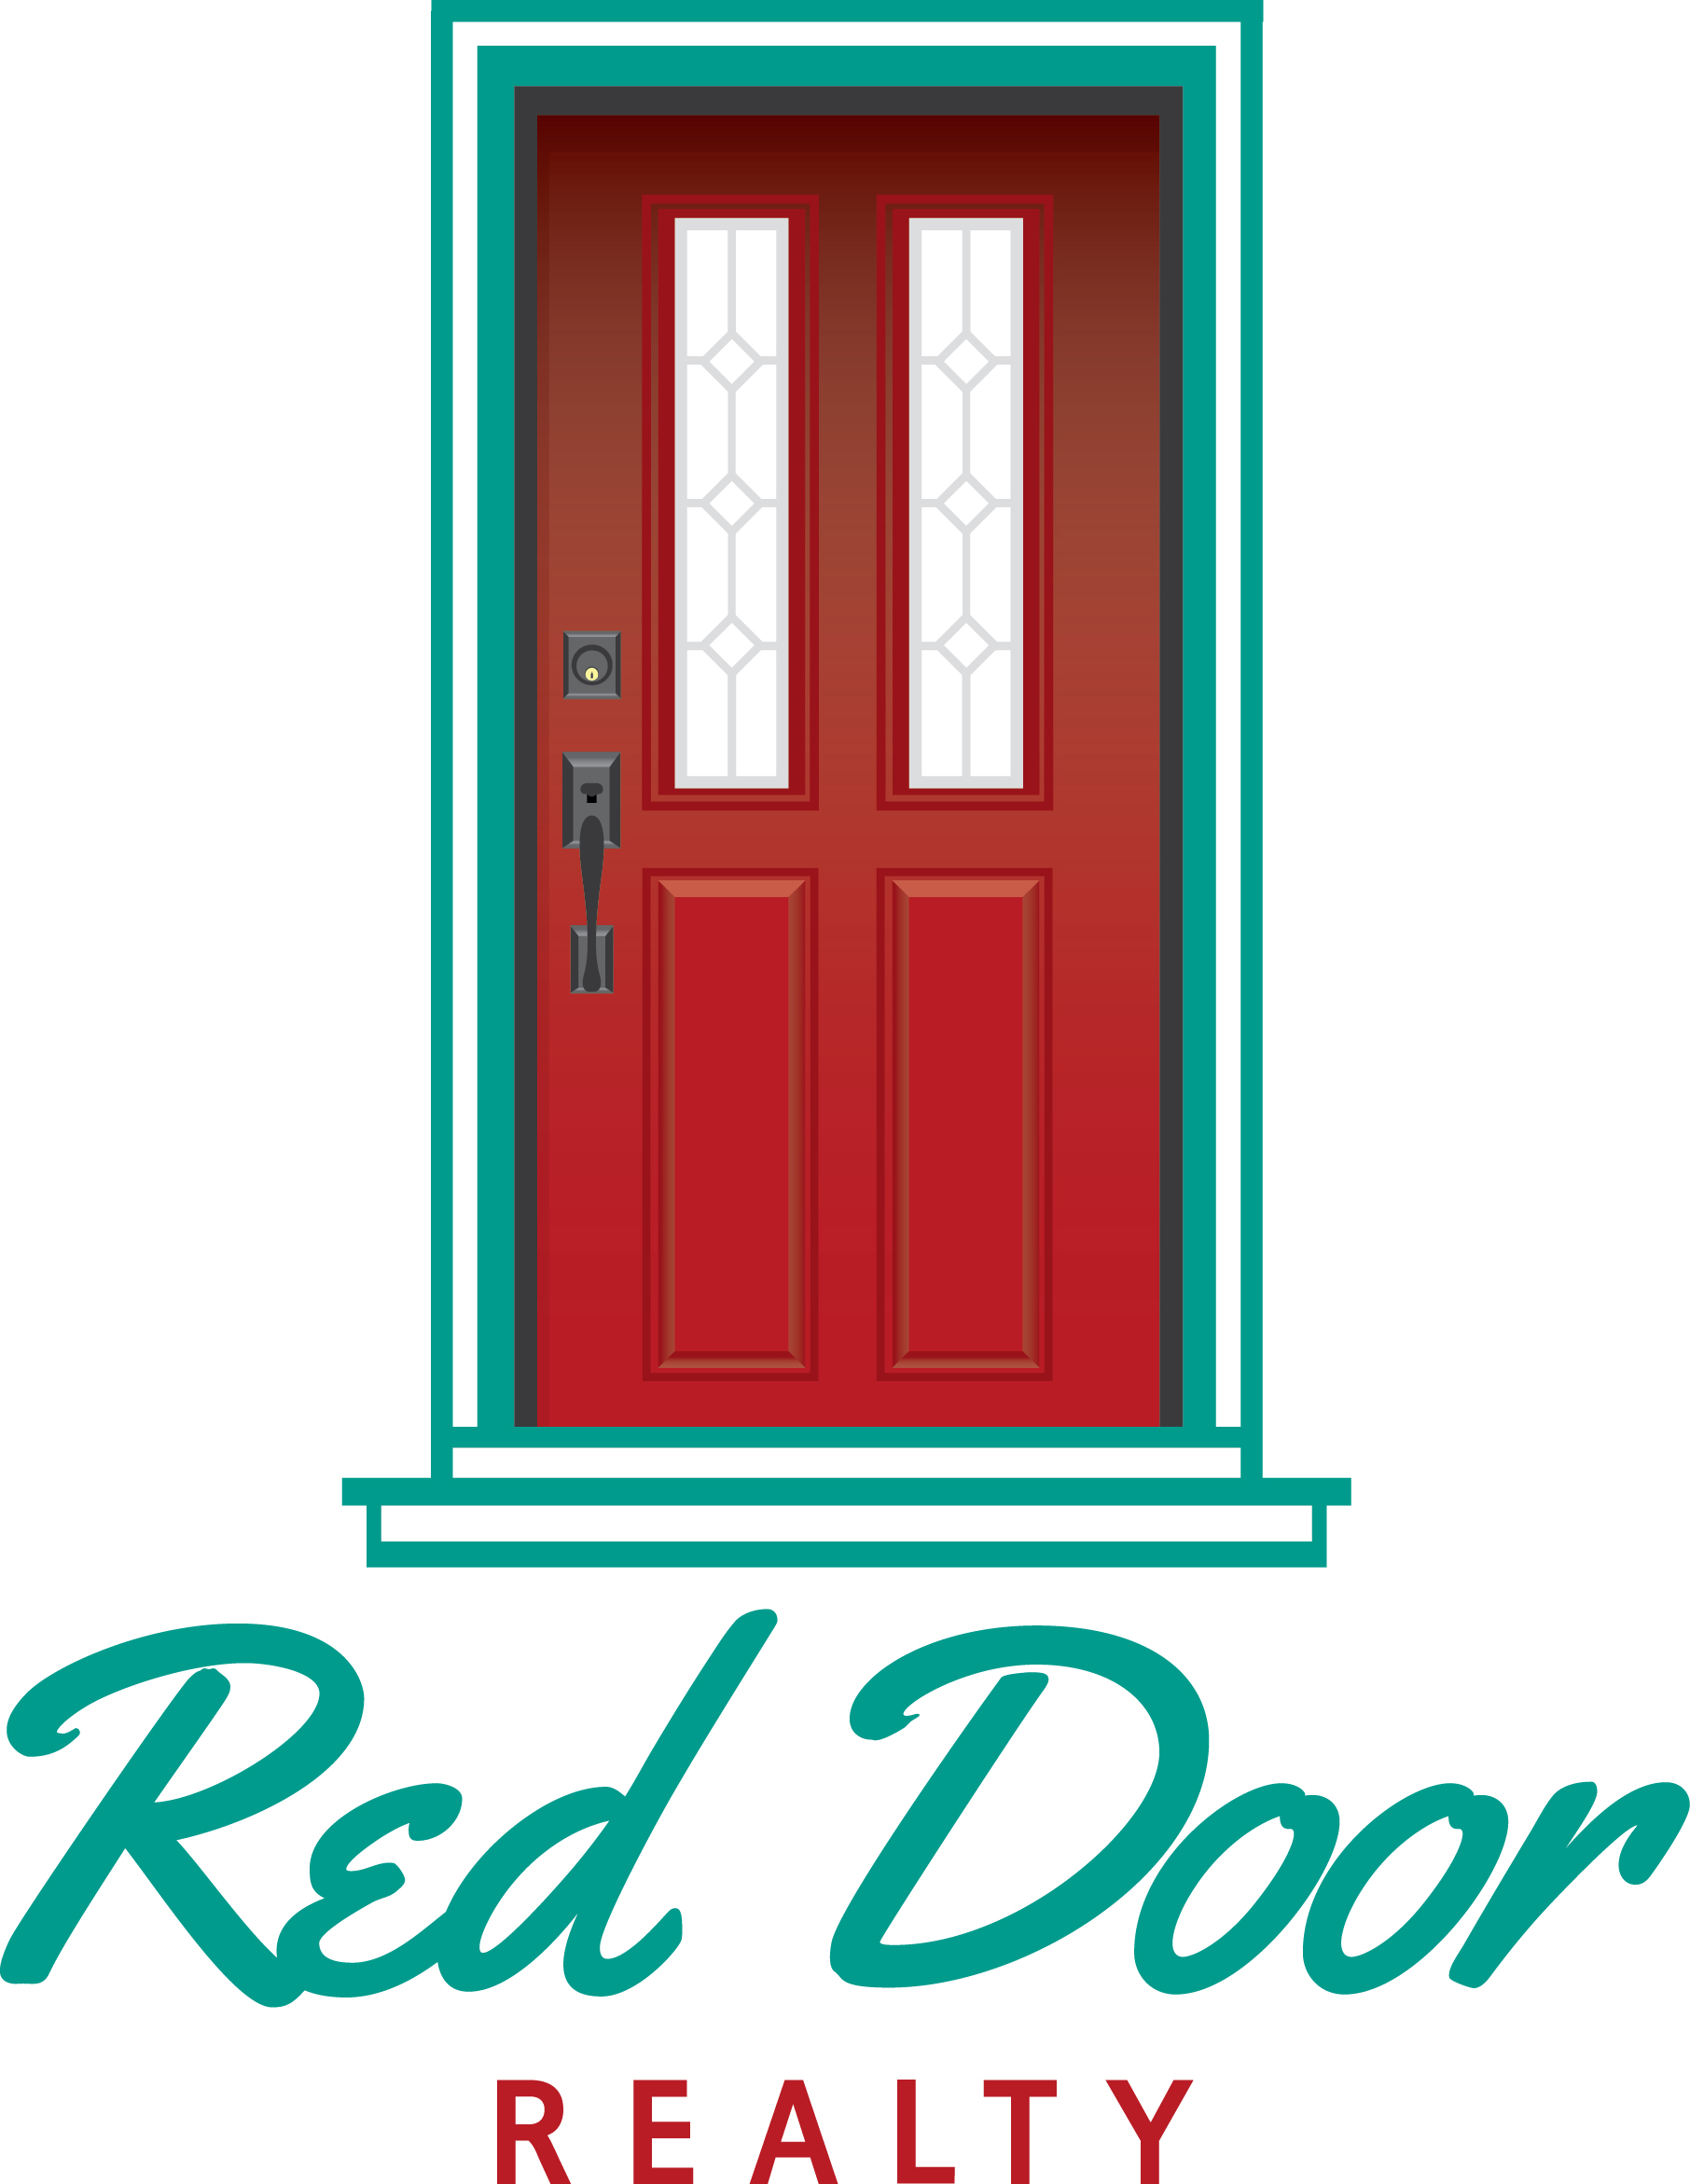 Red door realty lynchburg and surrounding homes for sale 434 red door realty rubansaba